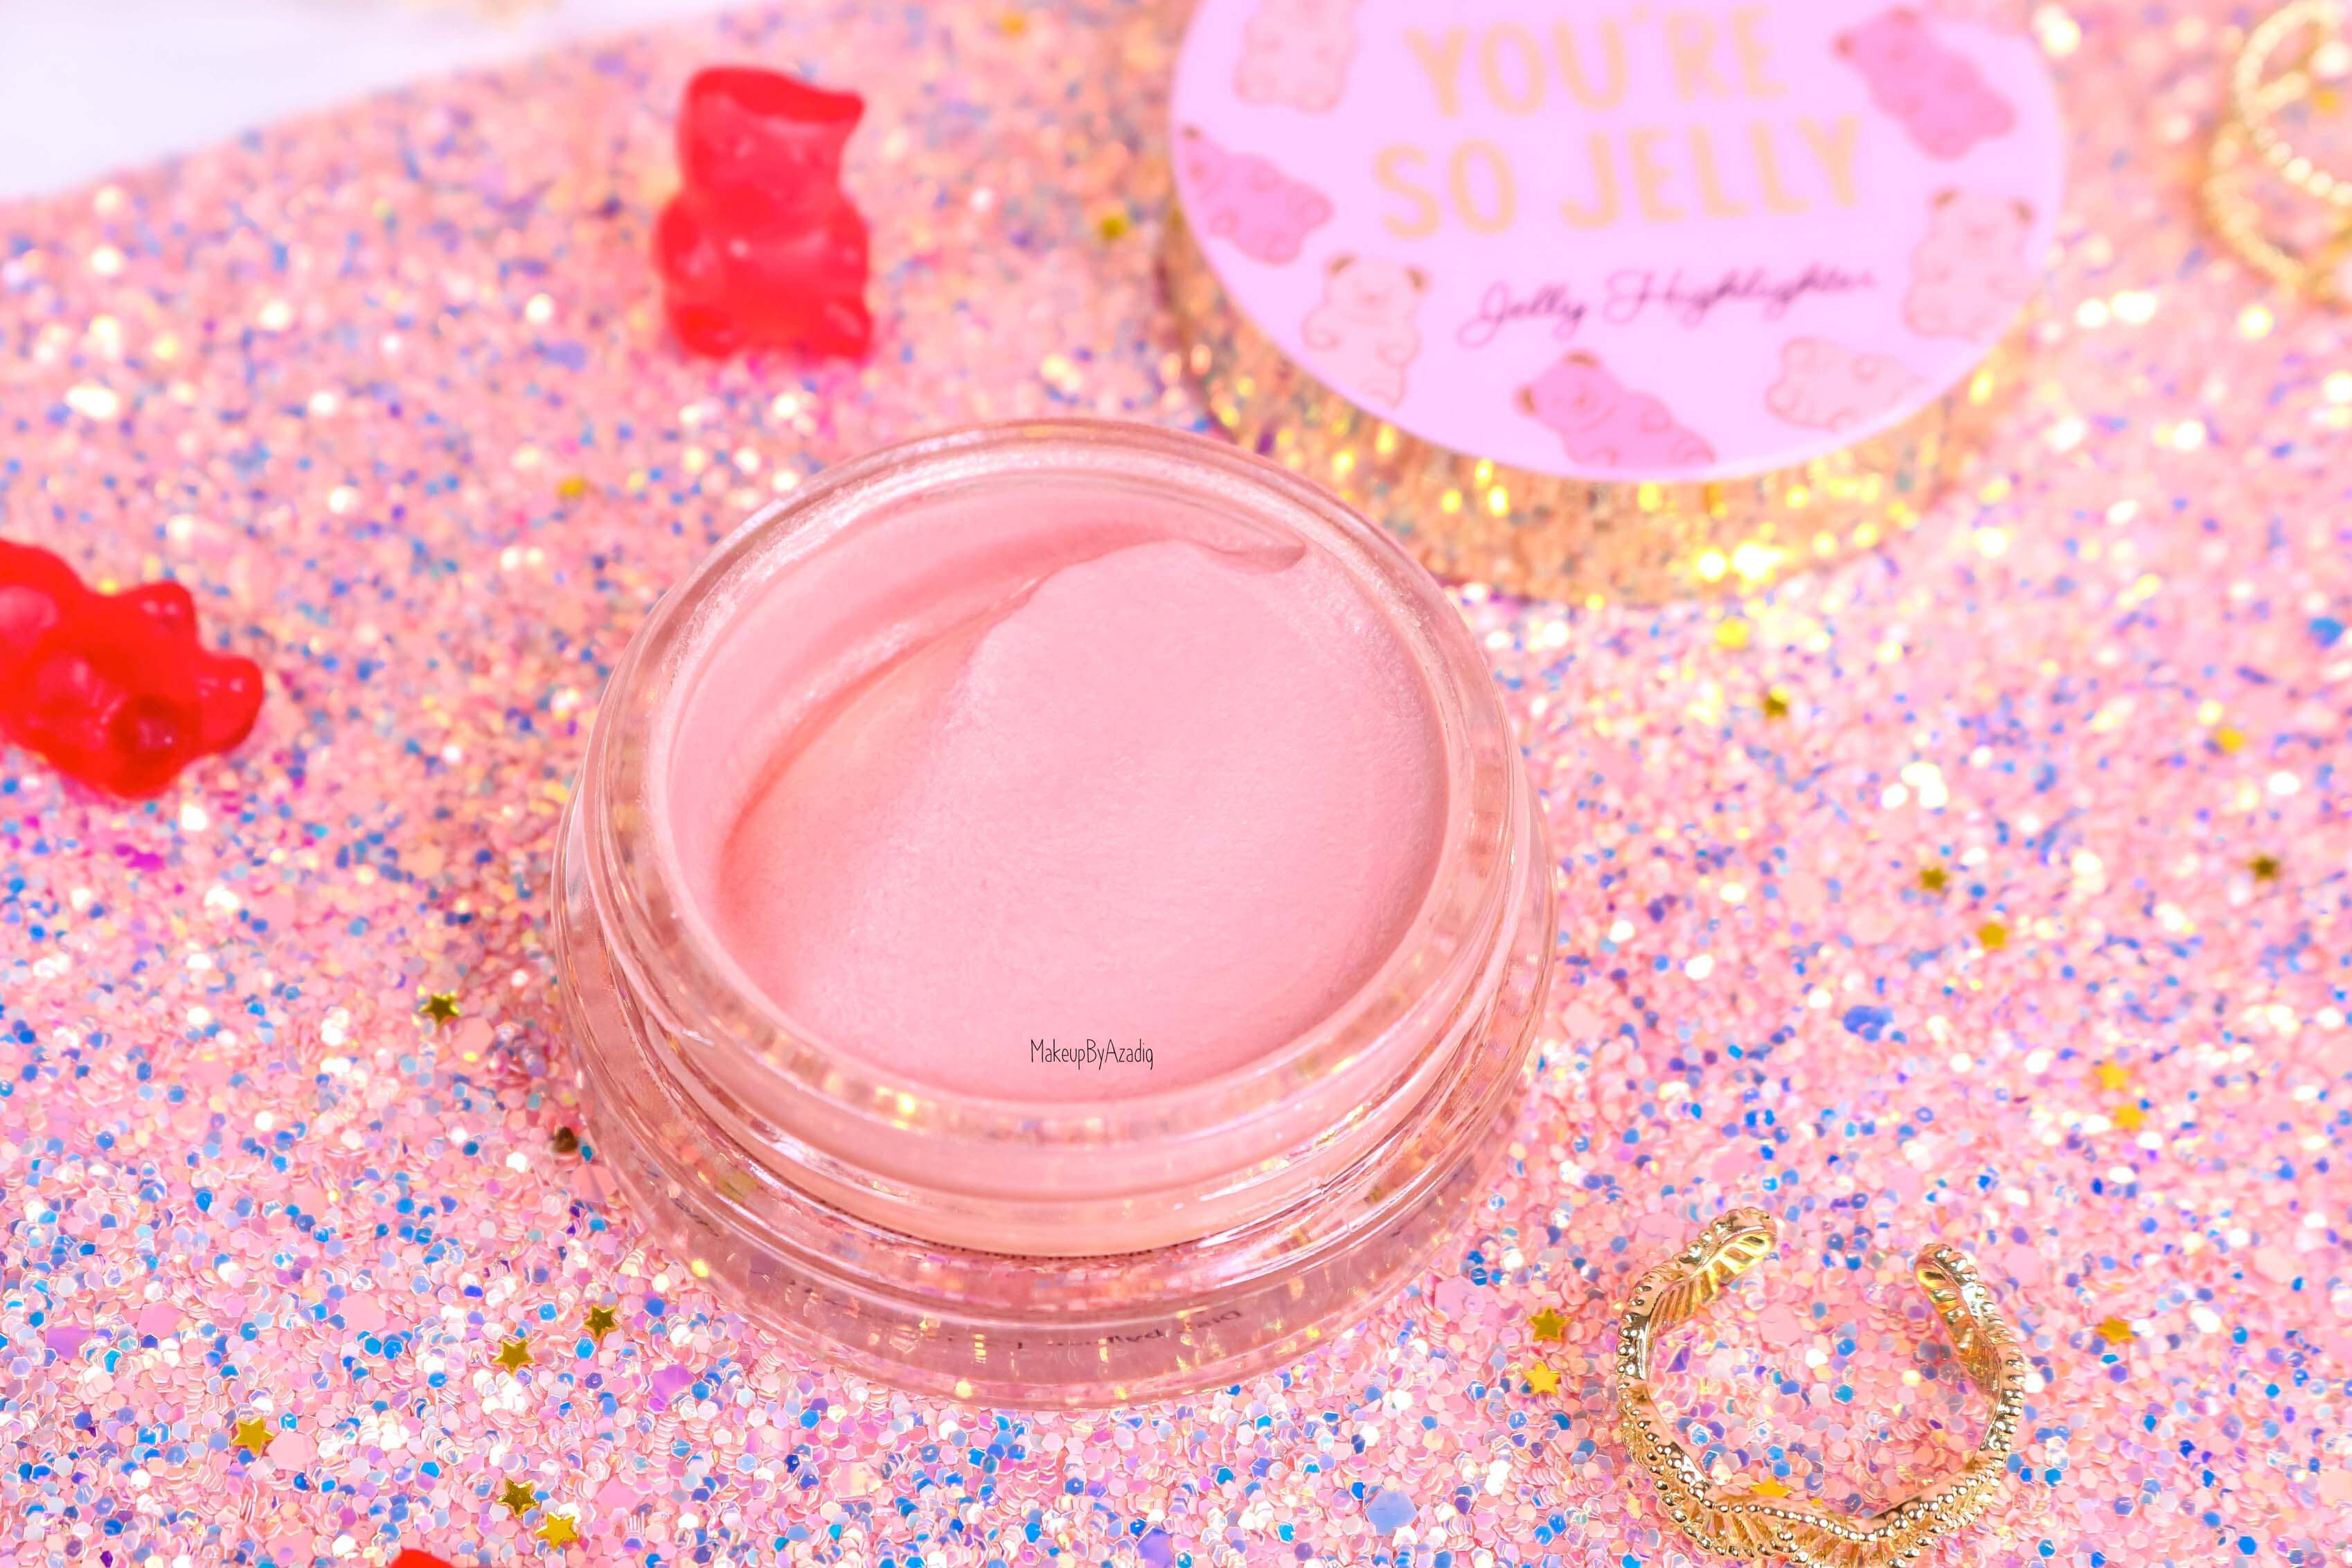 revue-highlighter-jelly-gel-rose-pink-too-faced-texture-cute-avis-prix-swatch-makeupbyazadig-sephora-france-glitter